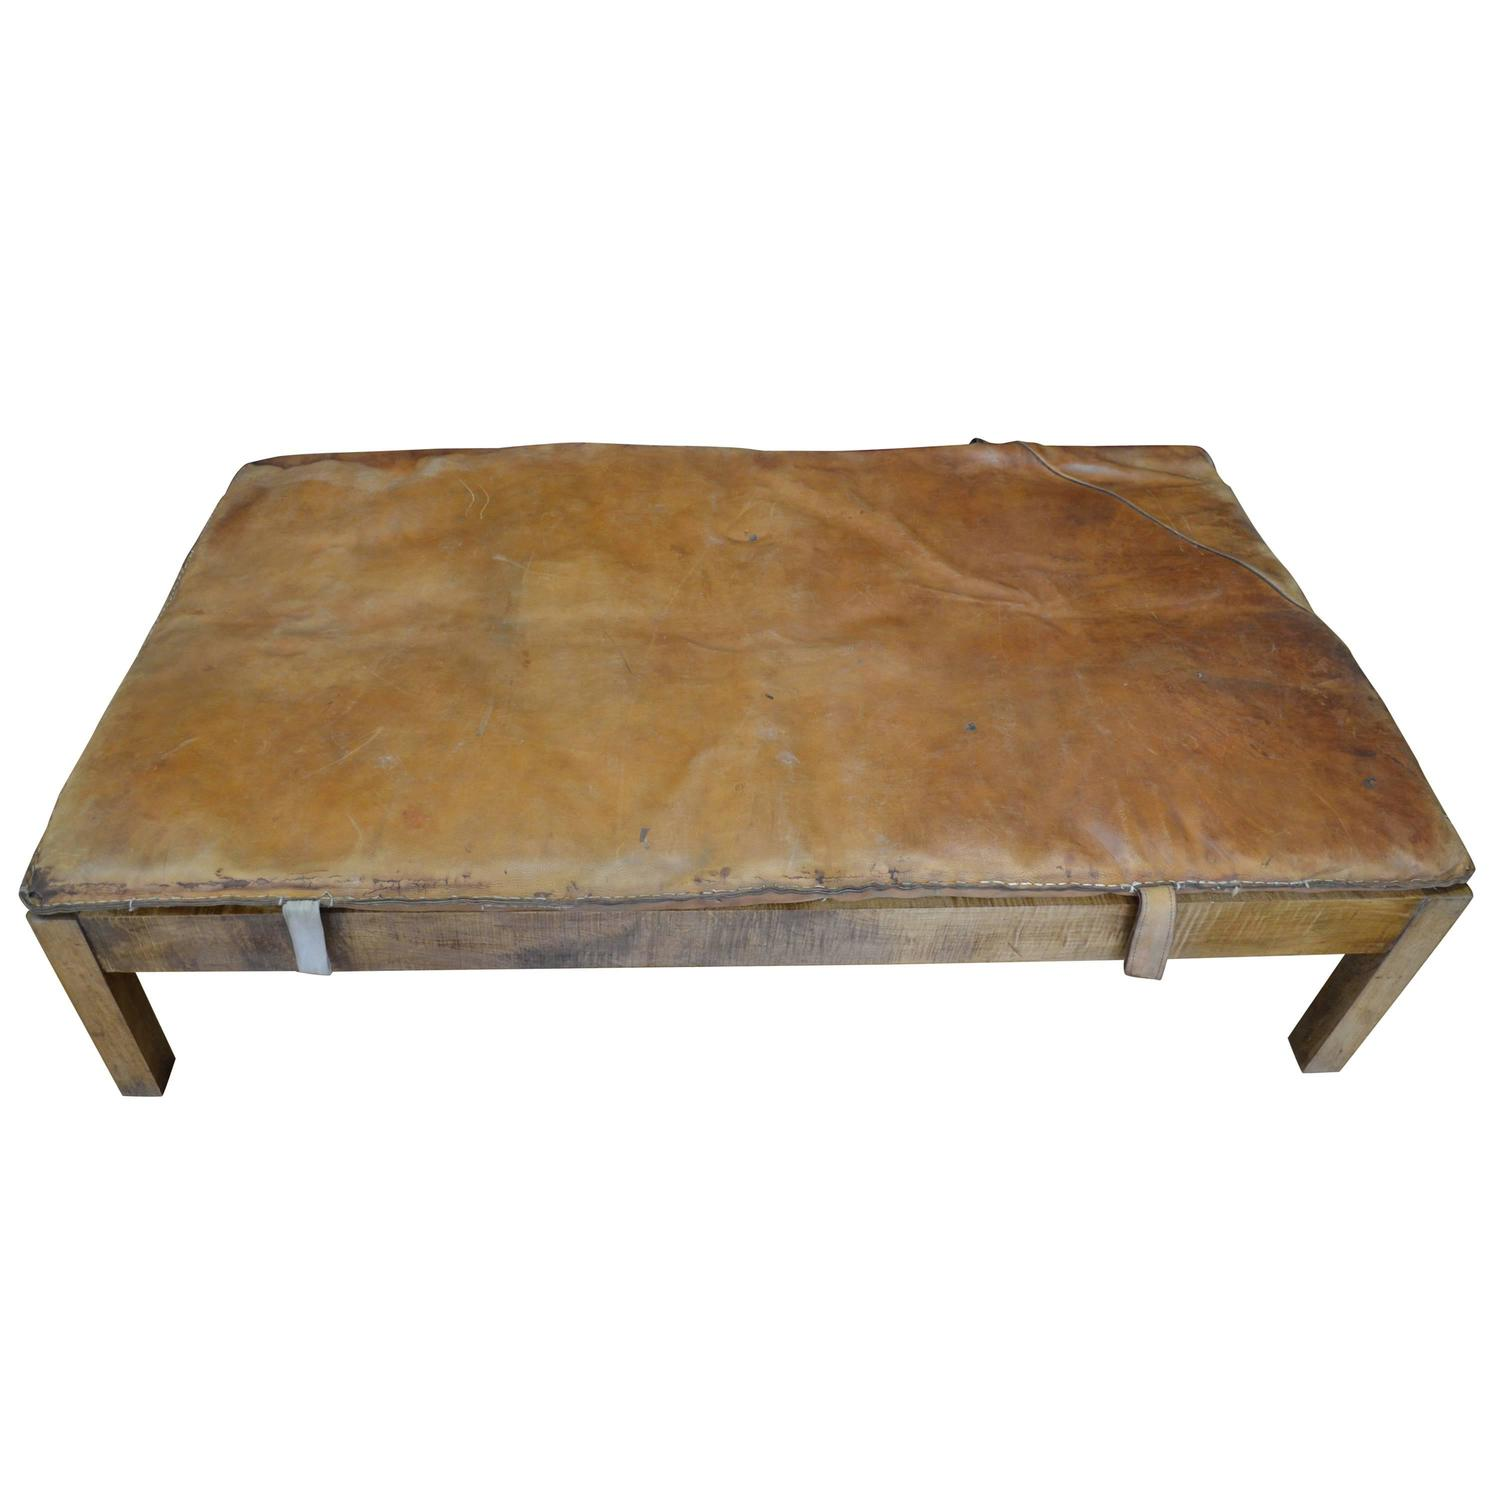 italian leather book form table in manner of maitland - smith at